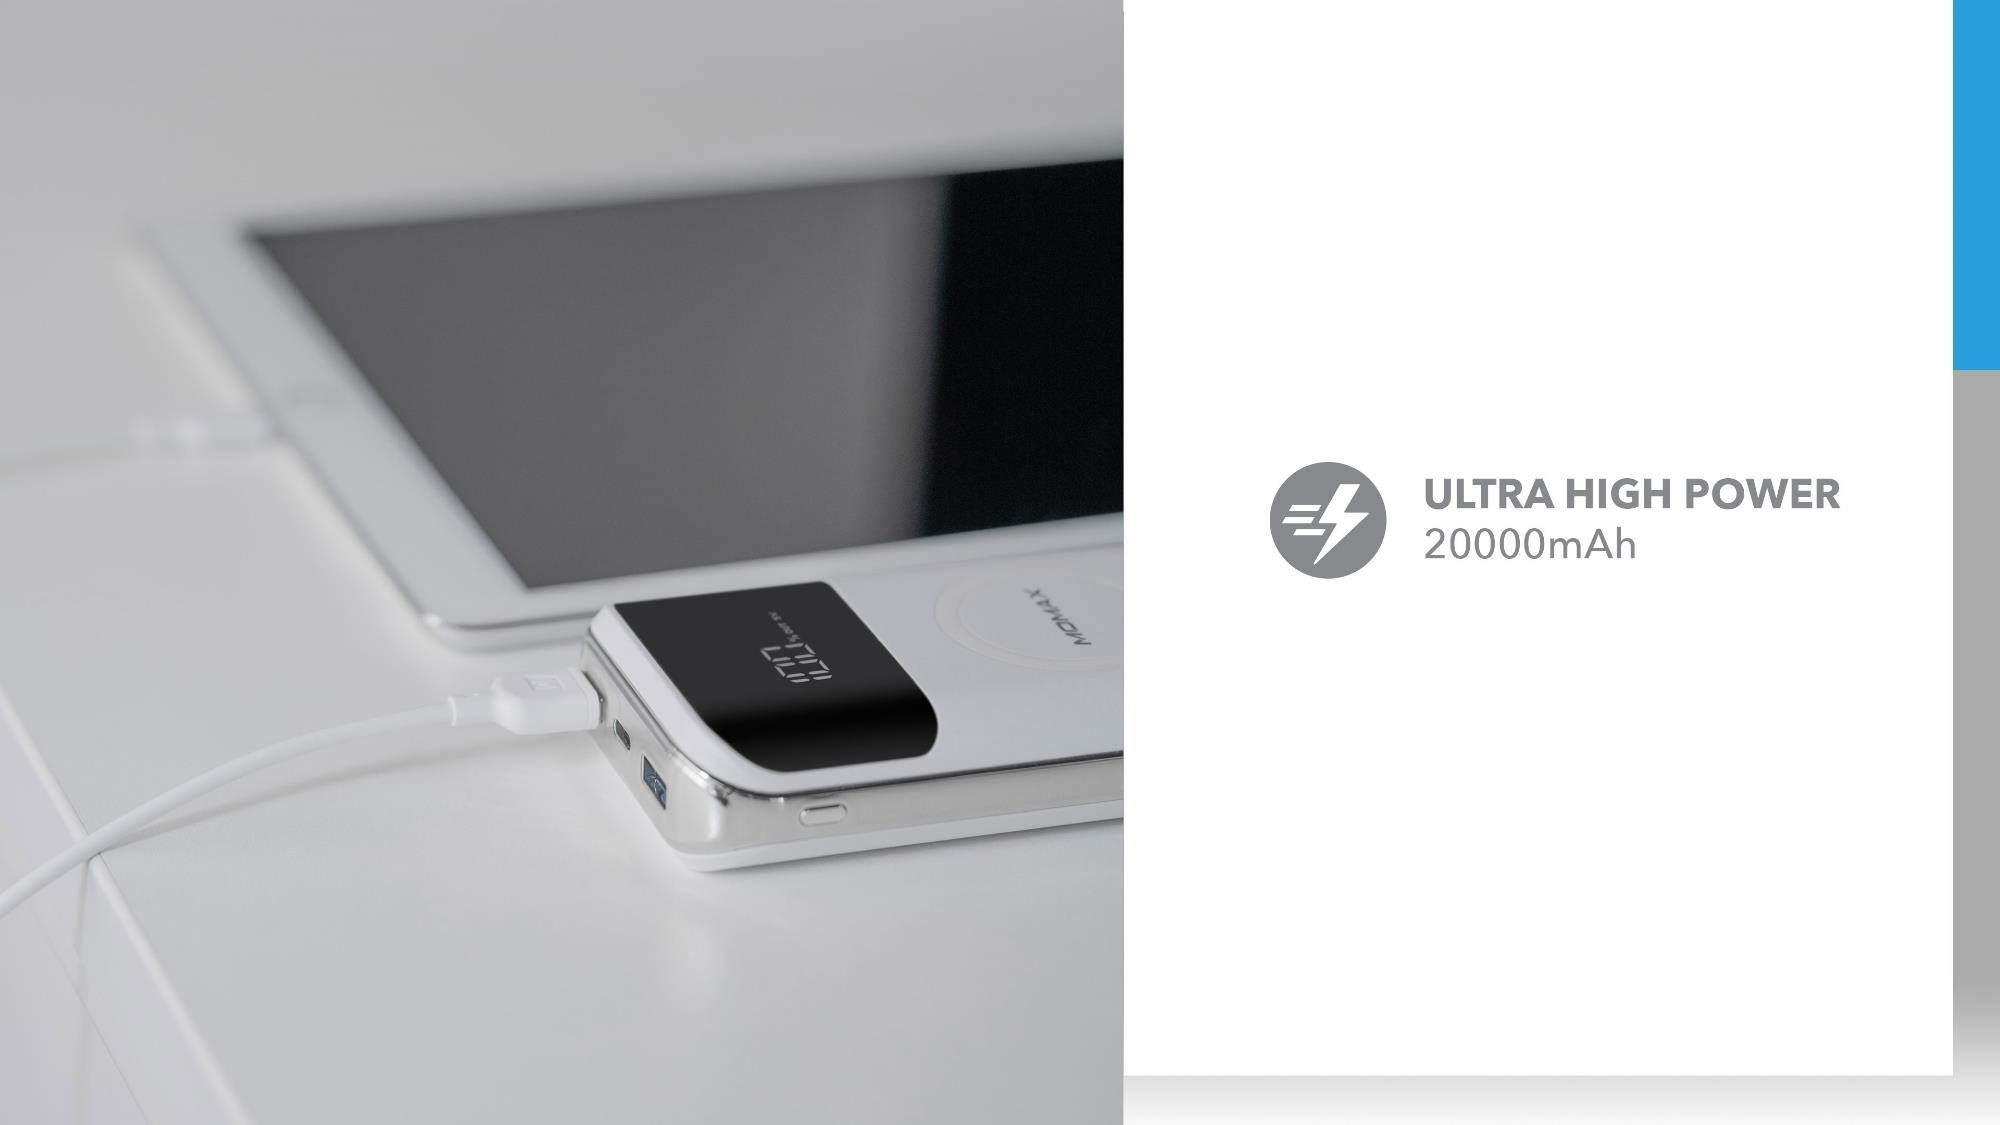 Q.Power Air 2+ Wireless External Battery Pack: Ultra High Power 20000mAH